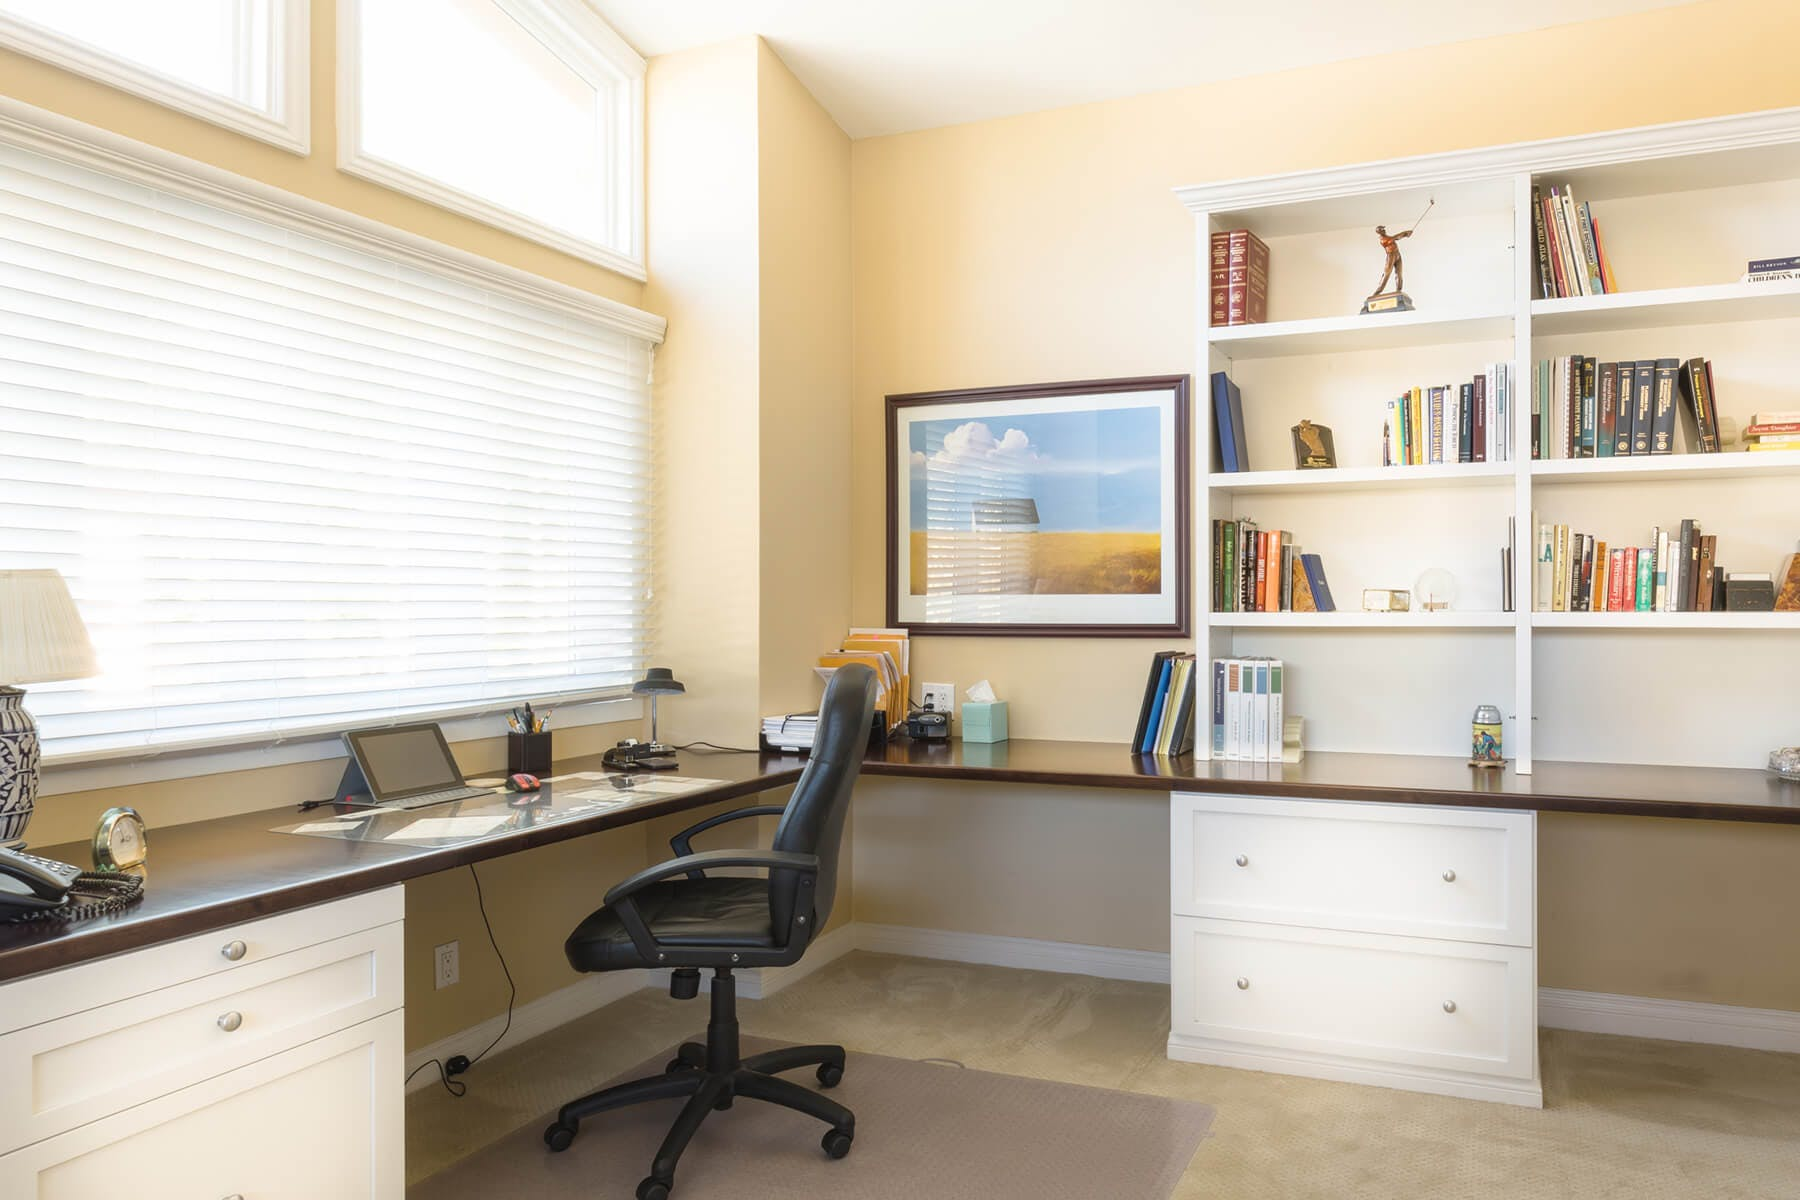 U201cWhat Are Some Ways A Custom Designed Home Office Can Improve Productivity?  In Other Words, How Does The Right Type Of Home Office Help People Do  Business?u201d